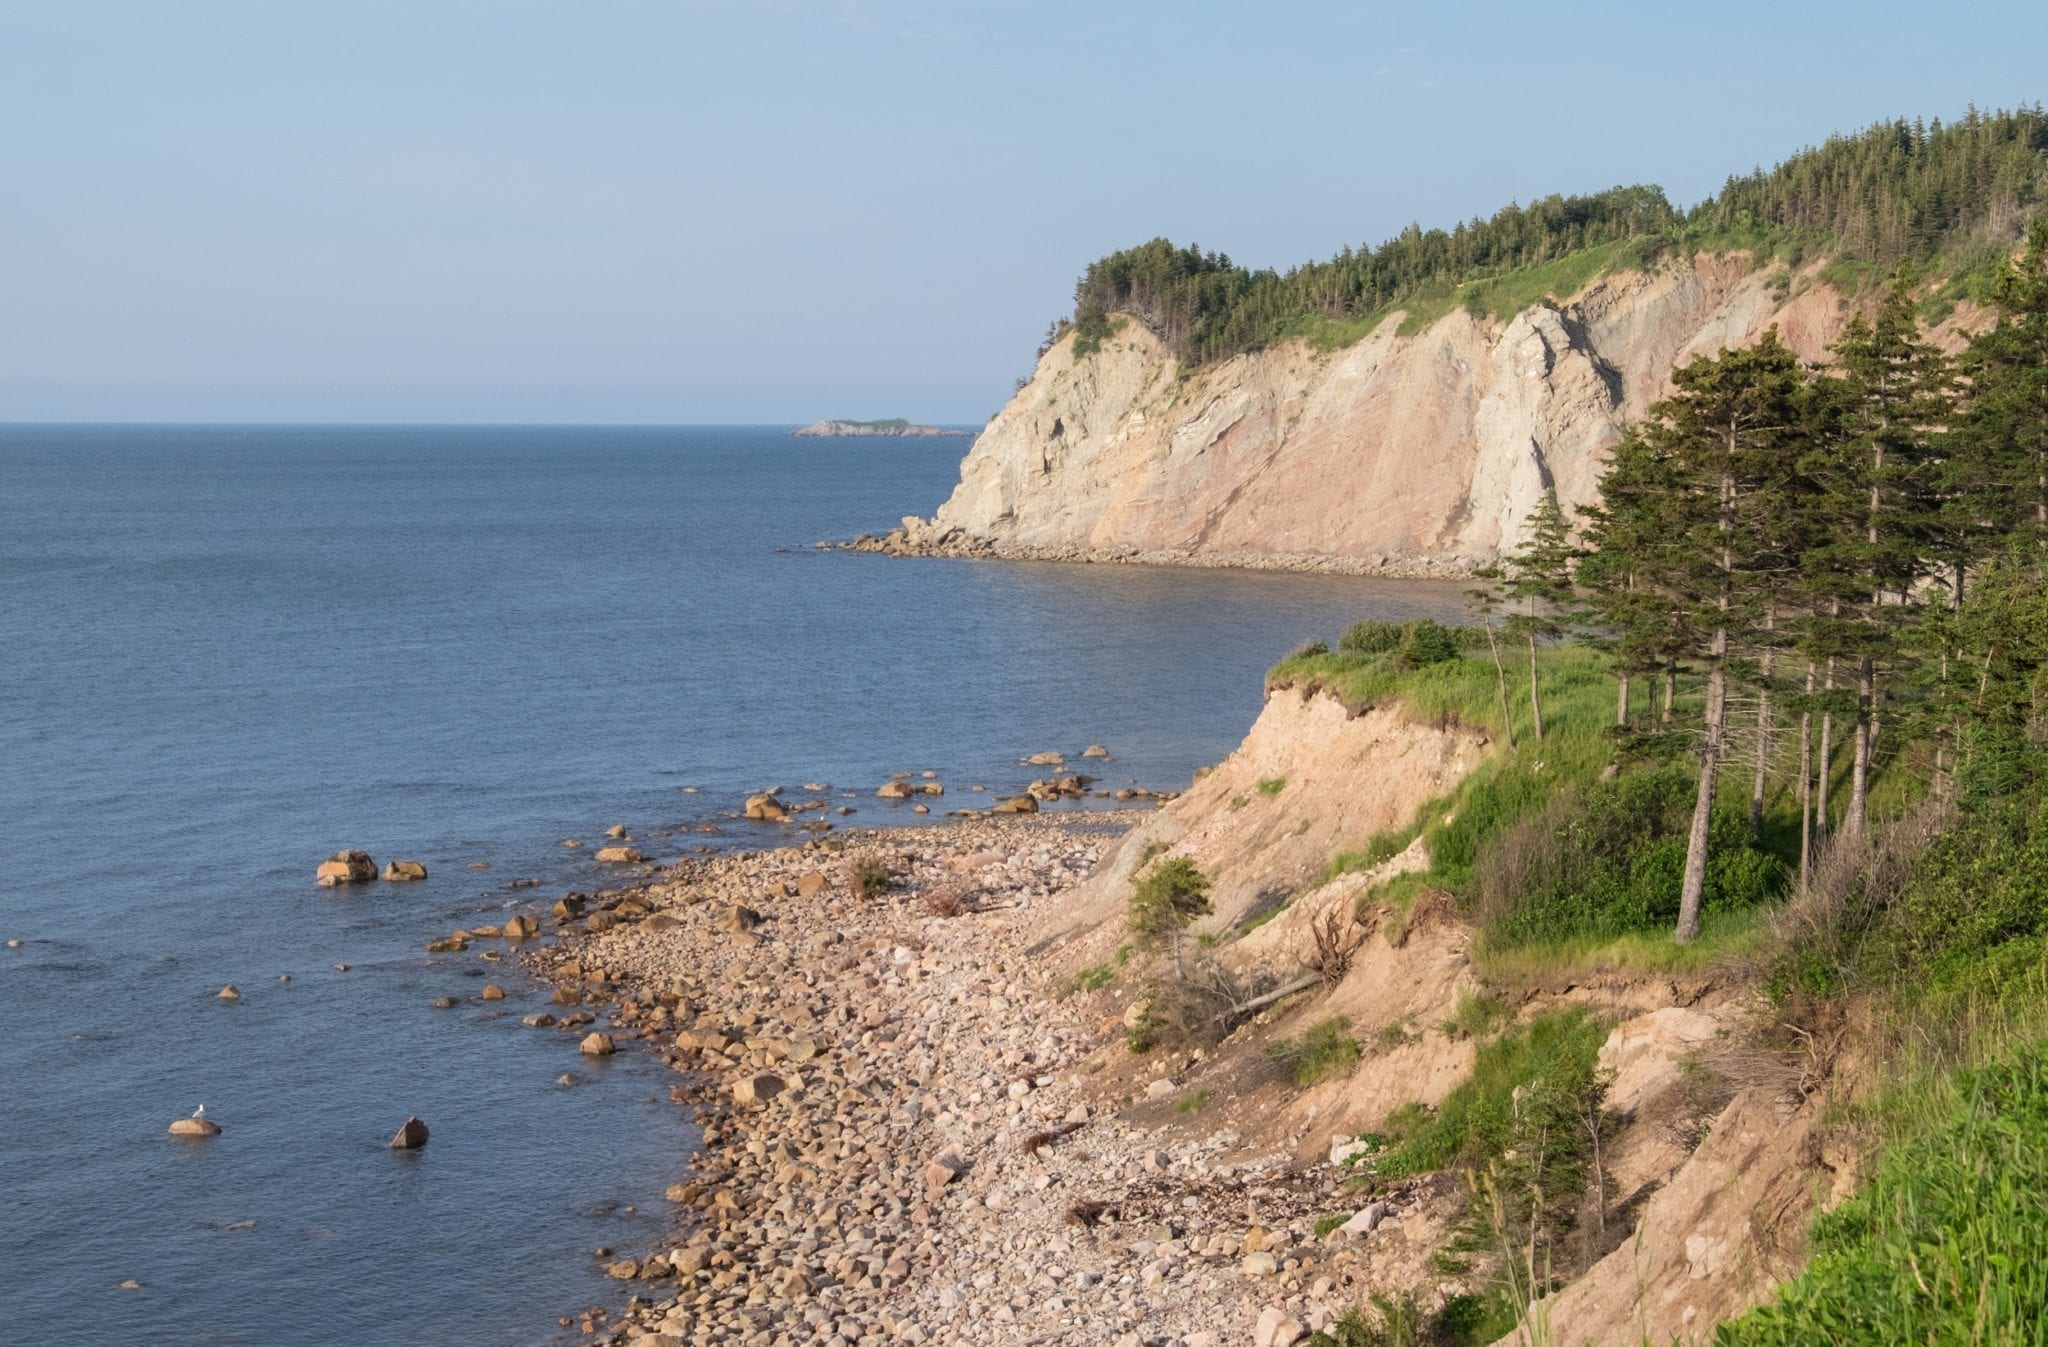 White limestone cliffs topped with grass plunging into the ocean in Cape Breton.